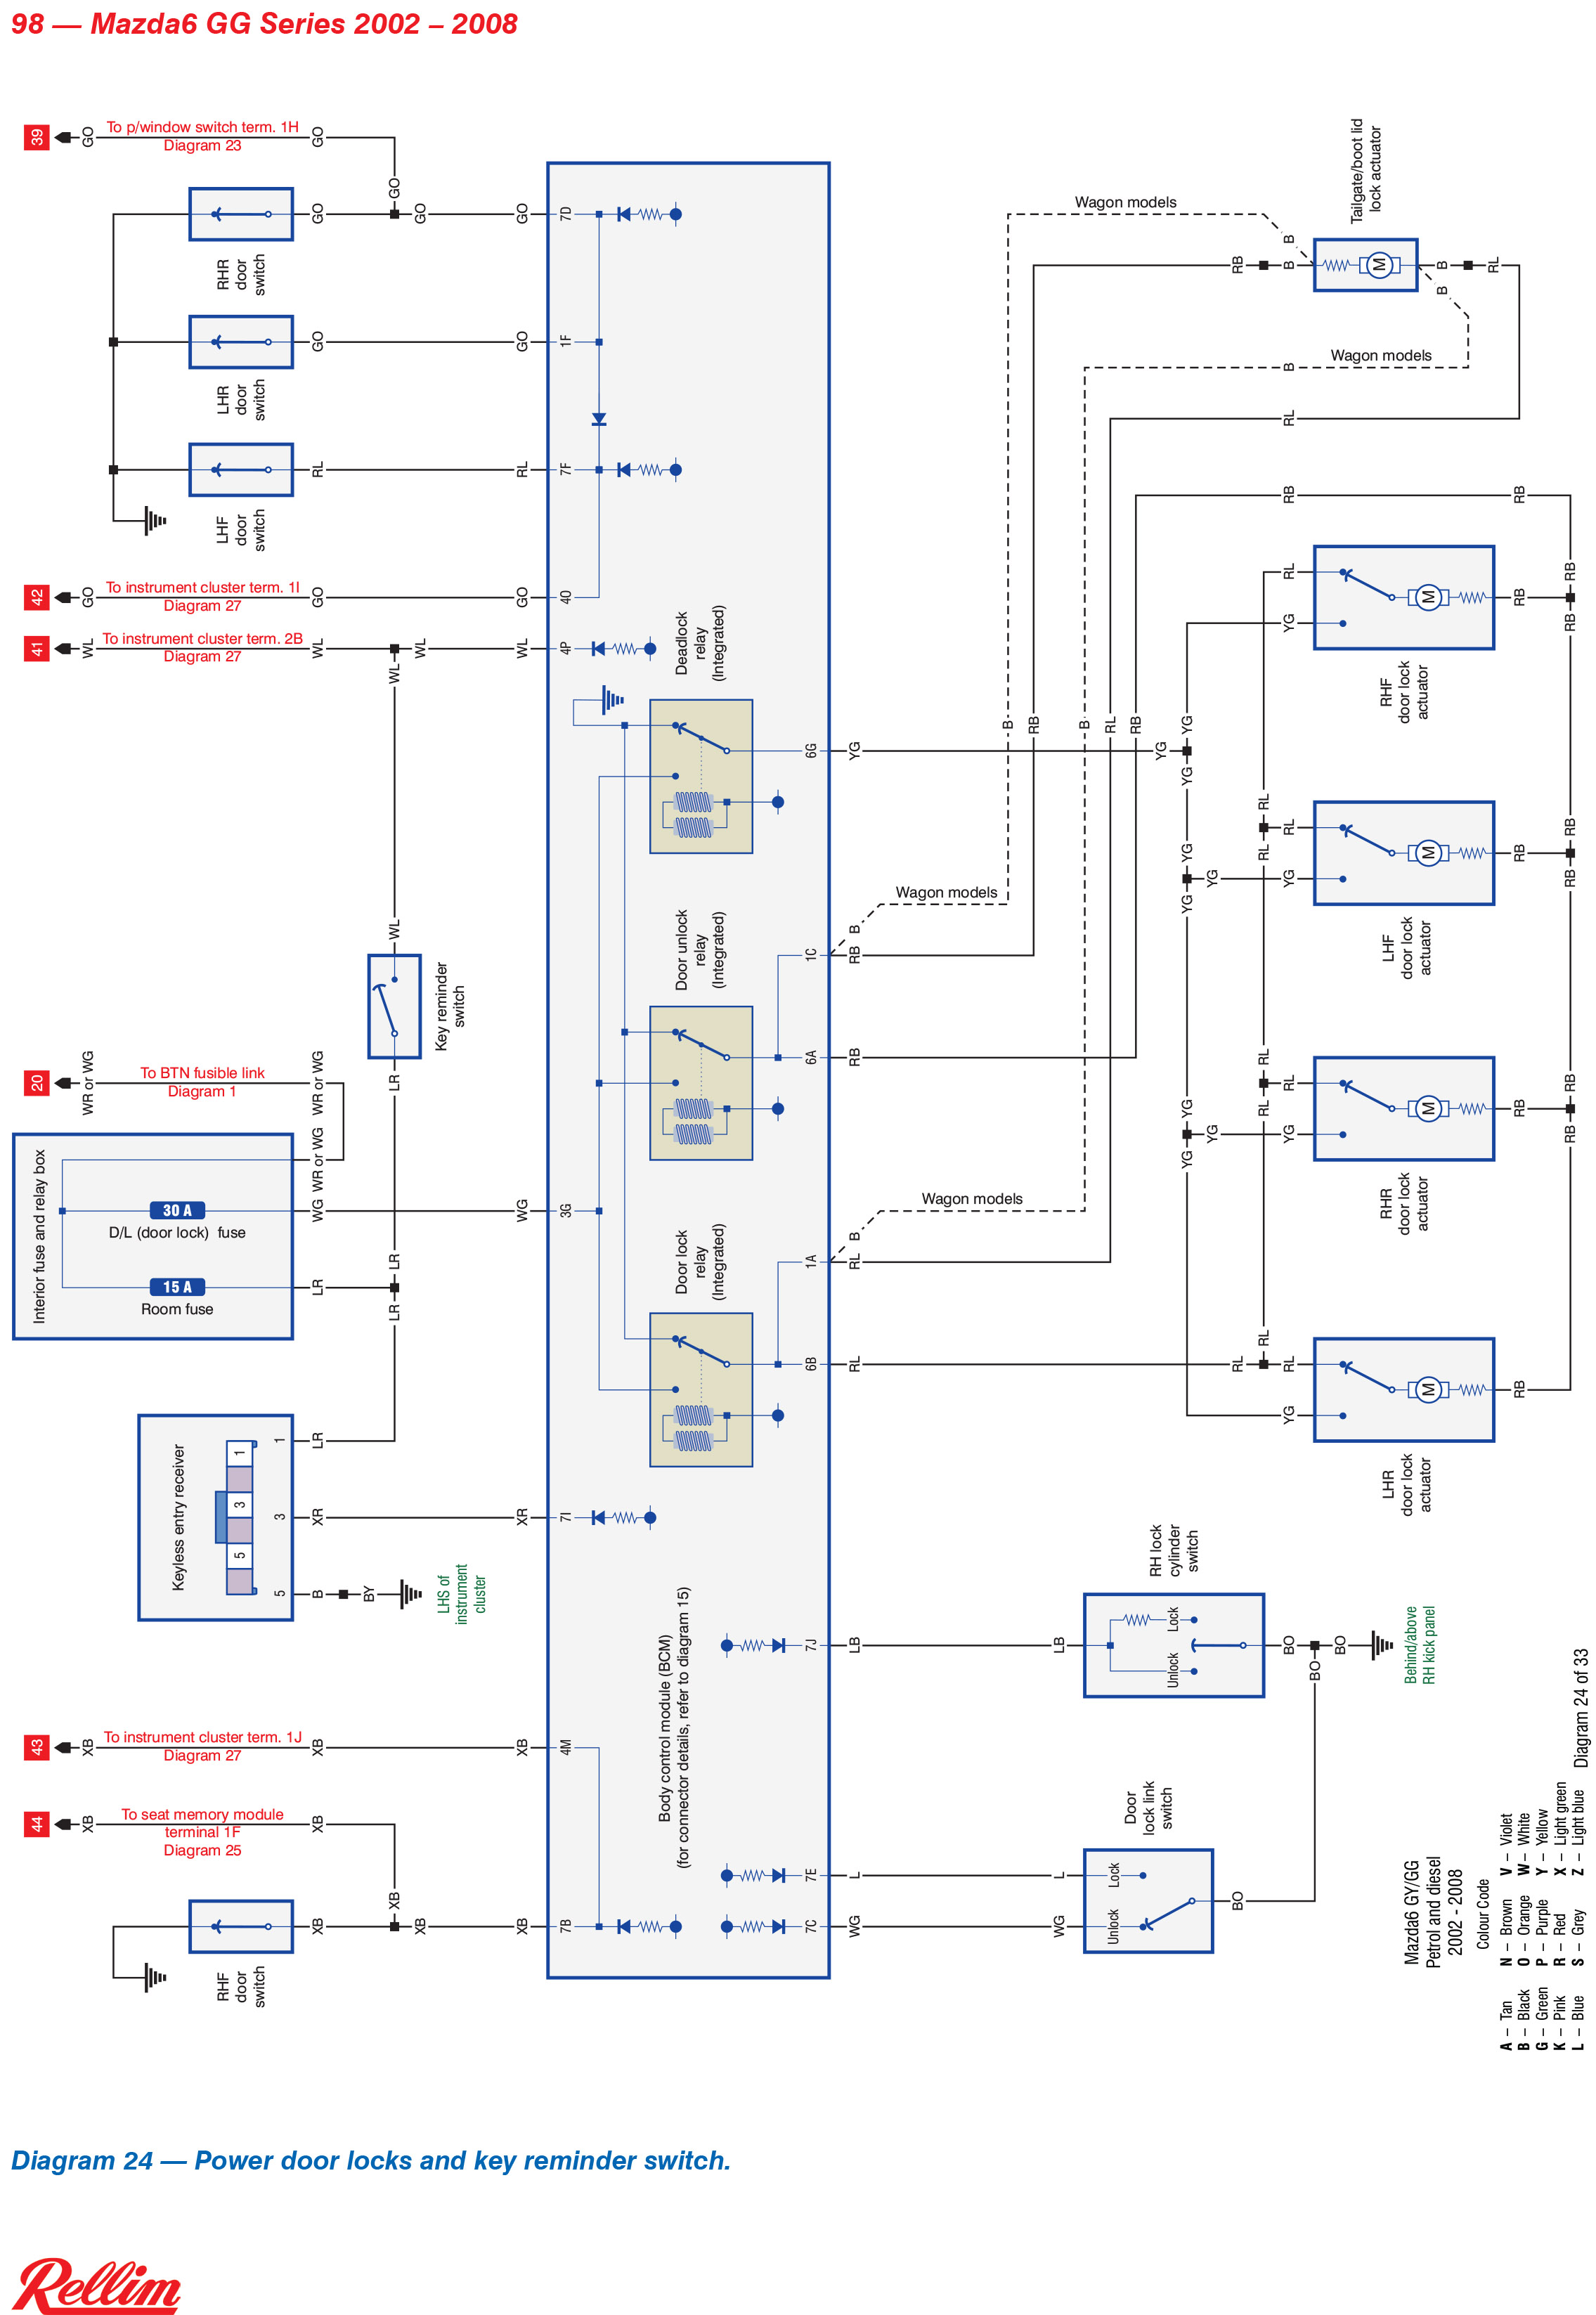 Rellim Wiring Diagrams Vol 9